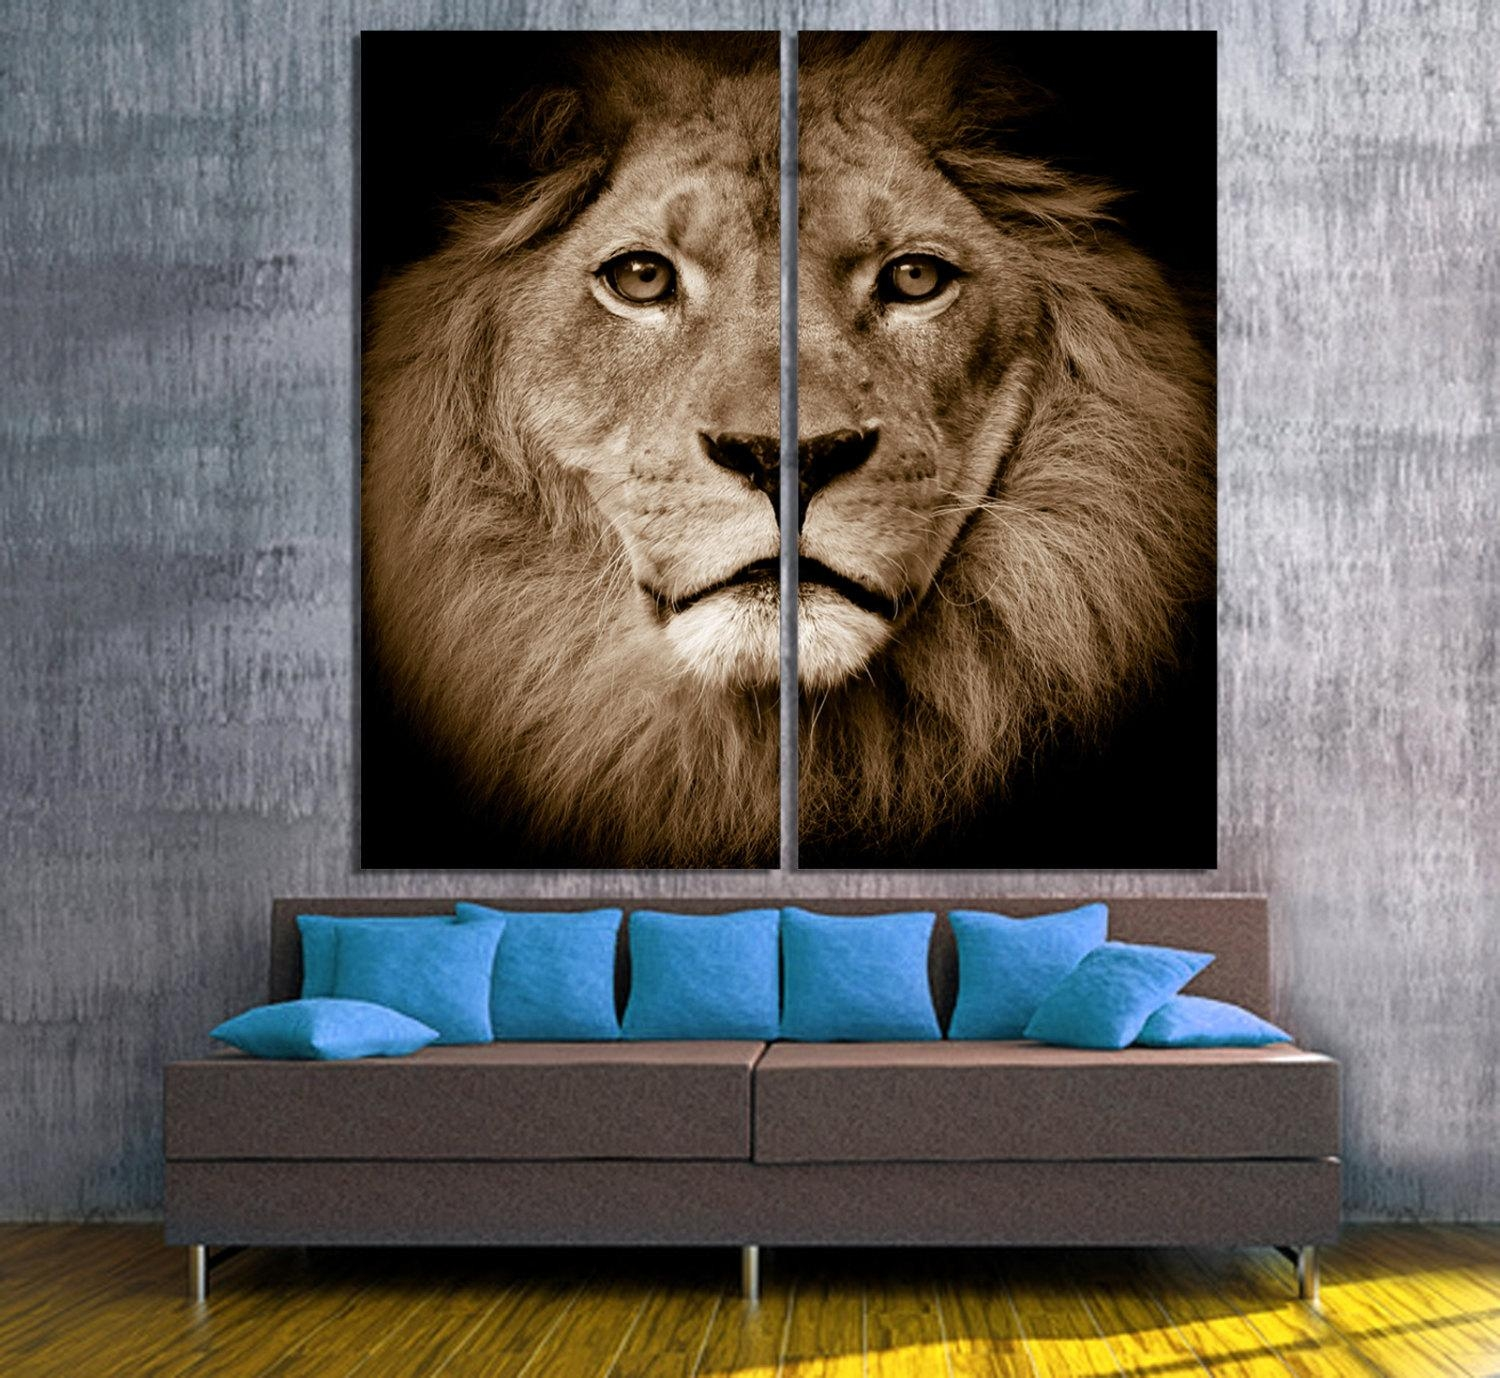 Lion Portrait 2 Panel Split Diptych Canvas Print (Image 10 of 20)